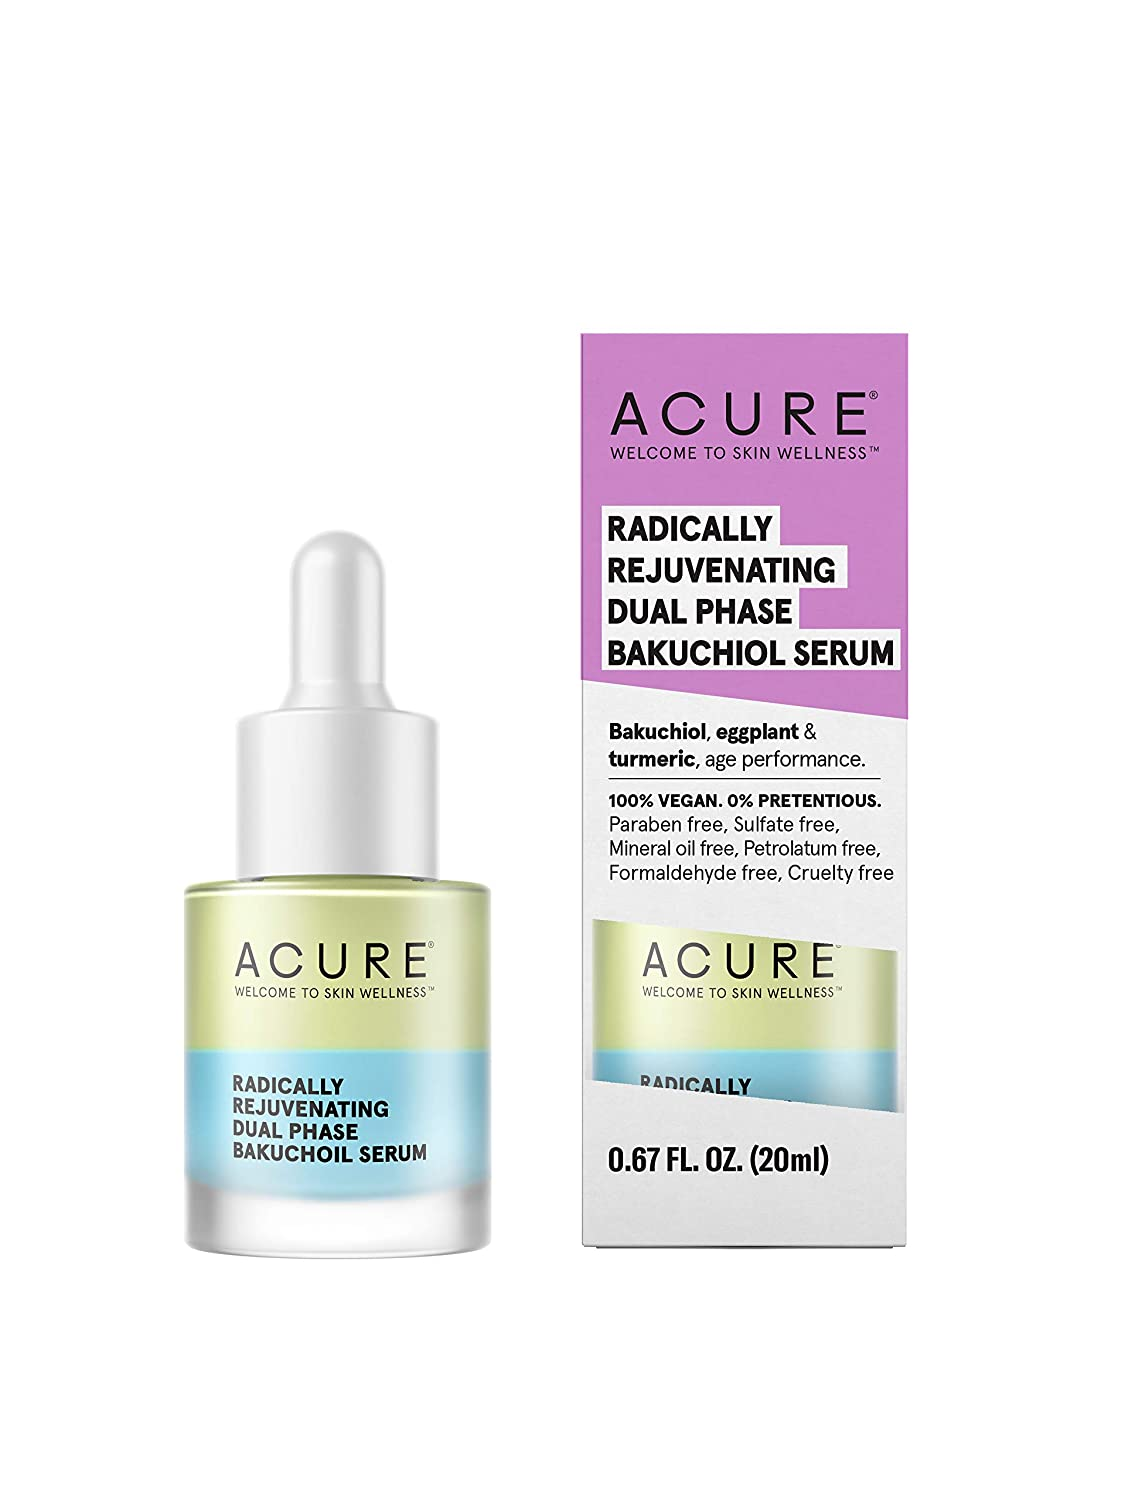 Acure Radically Rejuvenating Dual Phase Bakuchiol Serum | 100% Vegan | Provides Anti-Aging Support | Bakuchiol, Eggplant & Tumeric - Soothes, Hydrates & Anti Oxidant Rich | 0.67 Fl Ounce